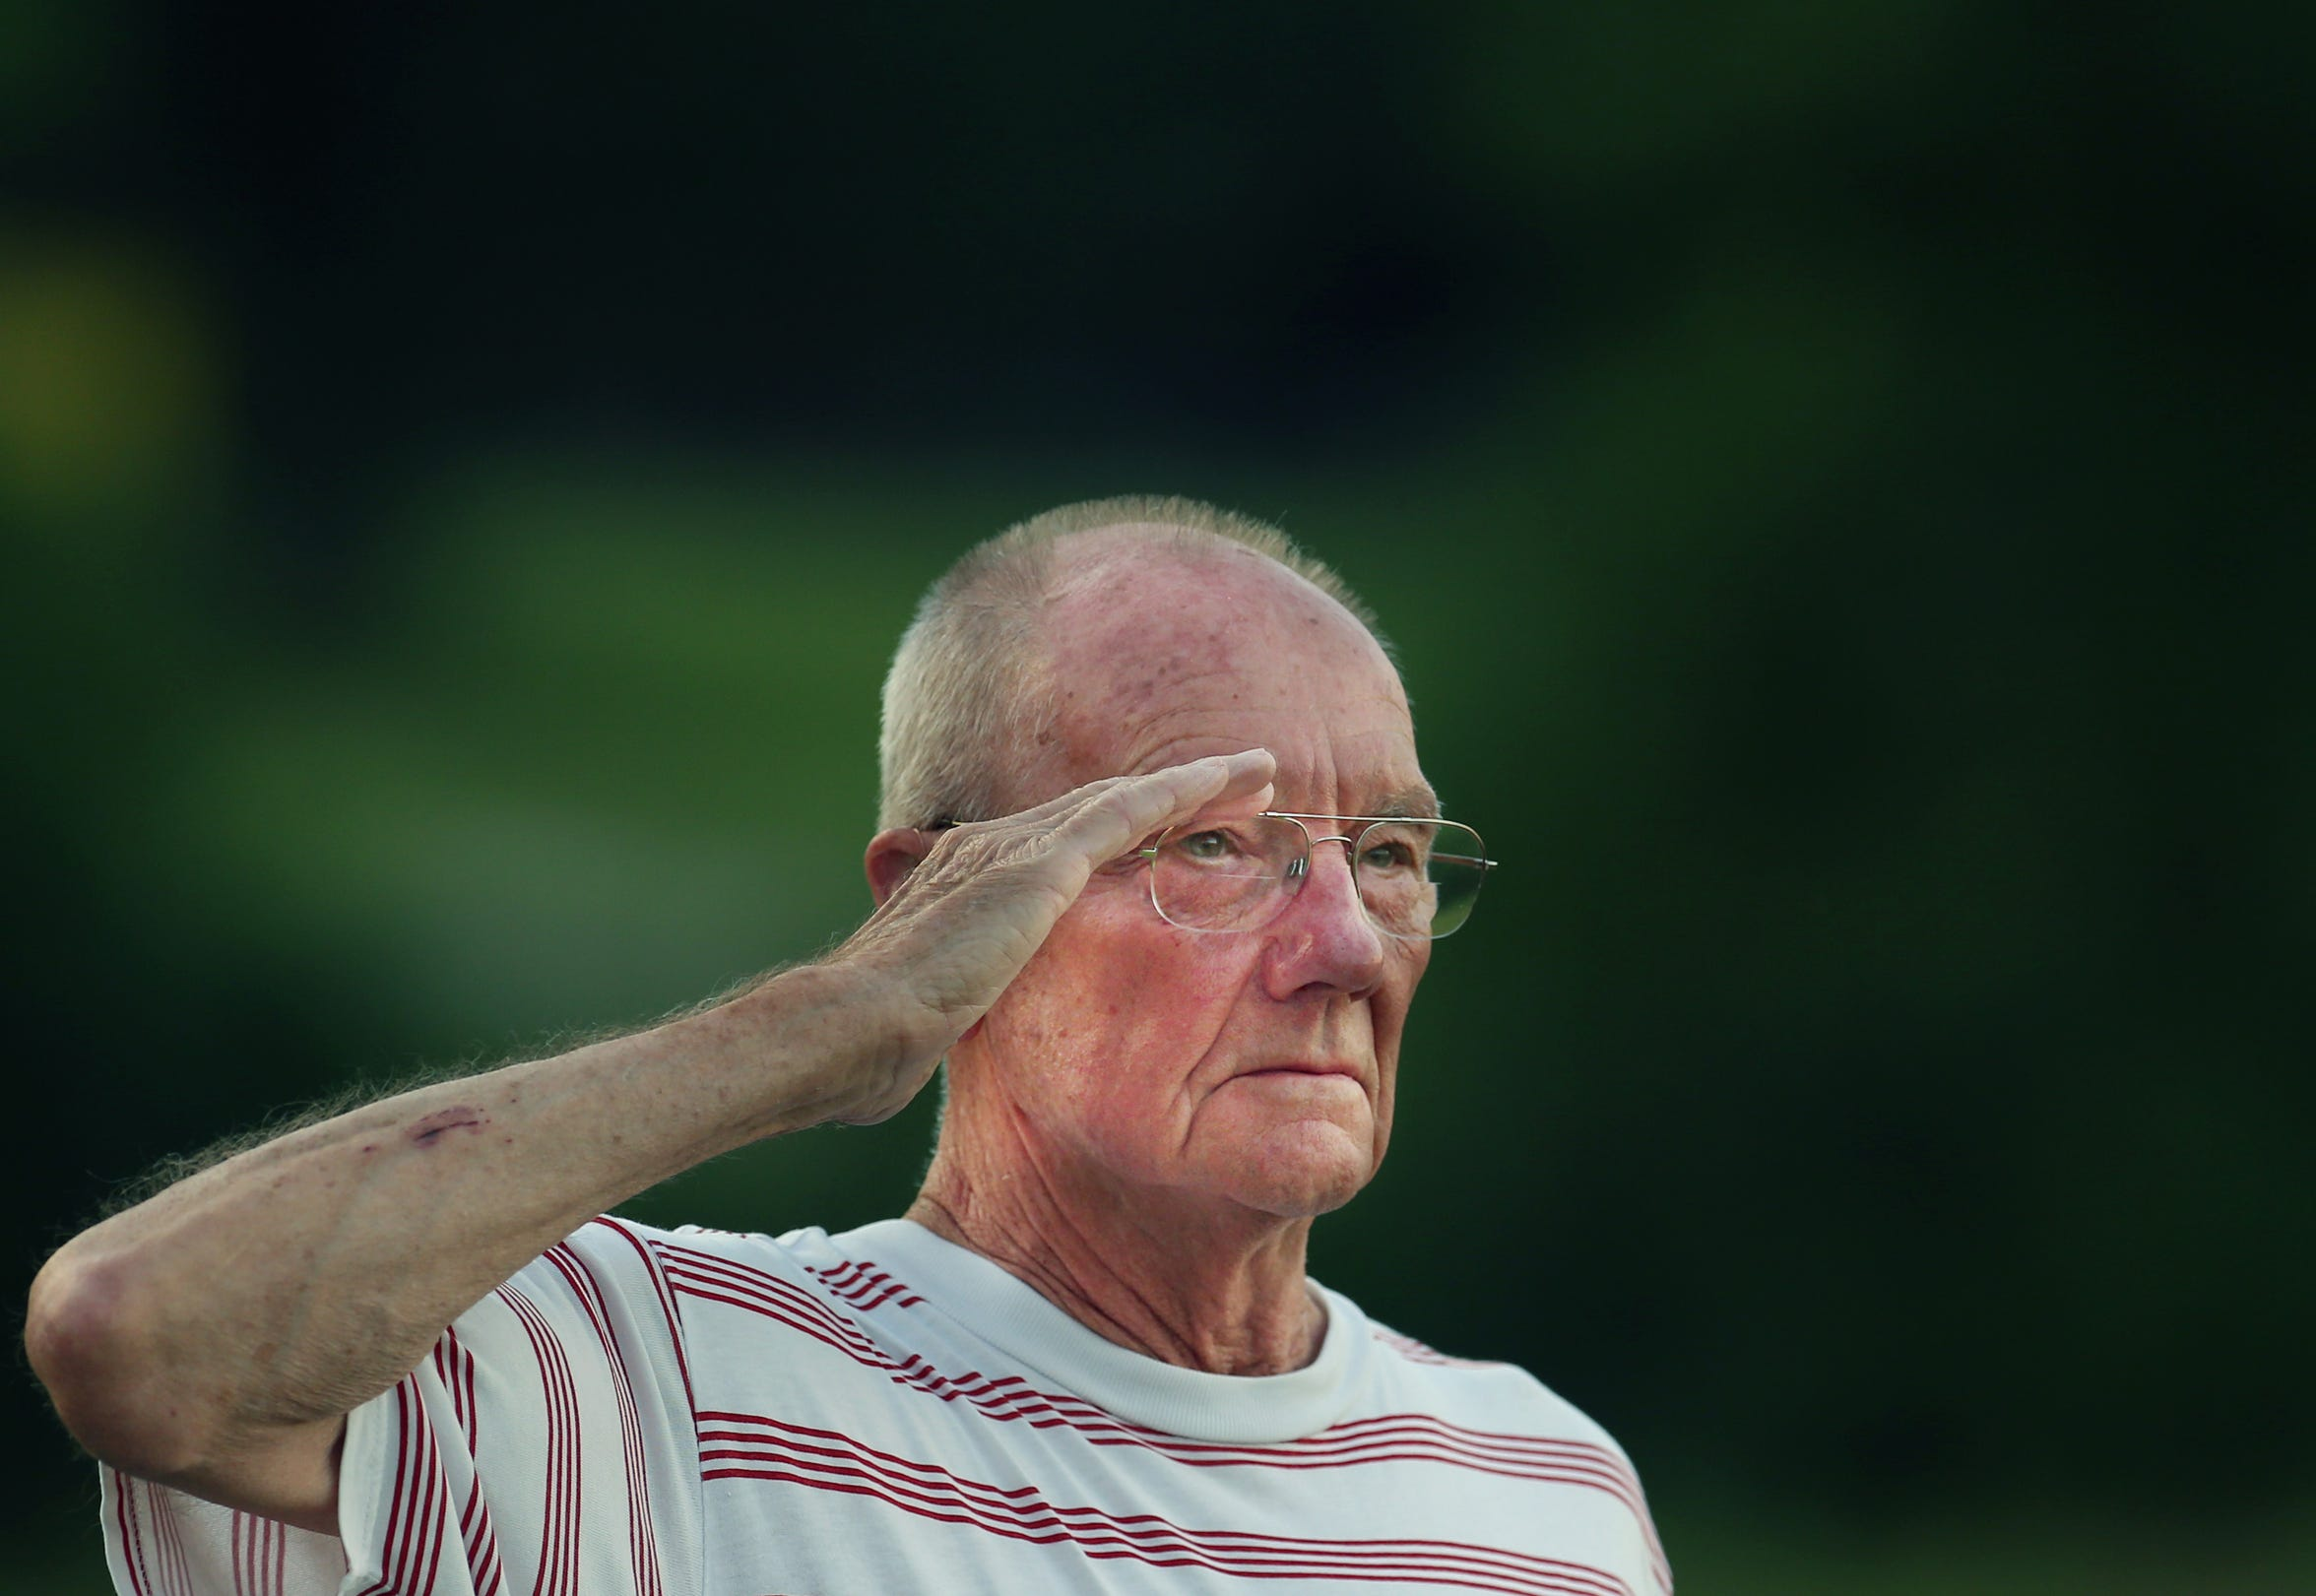 Ray Wolken, who joined the U.S. Army 64 years ago, salutes during a flag retirement ceremony by the Jeffersontown American Legion G.I. Post 244. Tens of thousands of American flags are under the large flag retired from Town & Country Ford. John Wright, with the post, believes that this flag retirement ceremony might be the largest in the U.S. June 29, 2019.